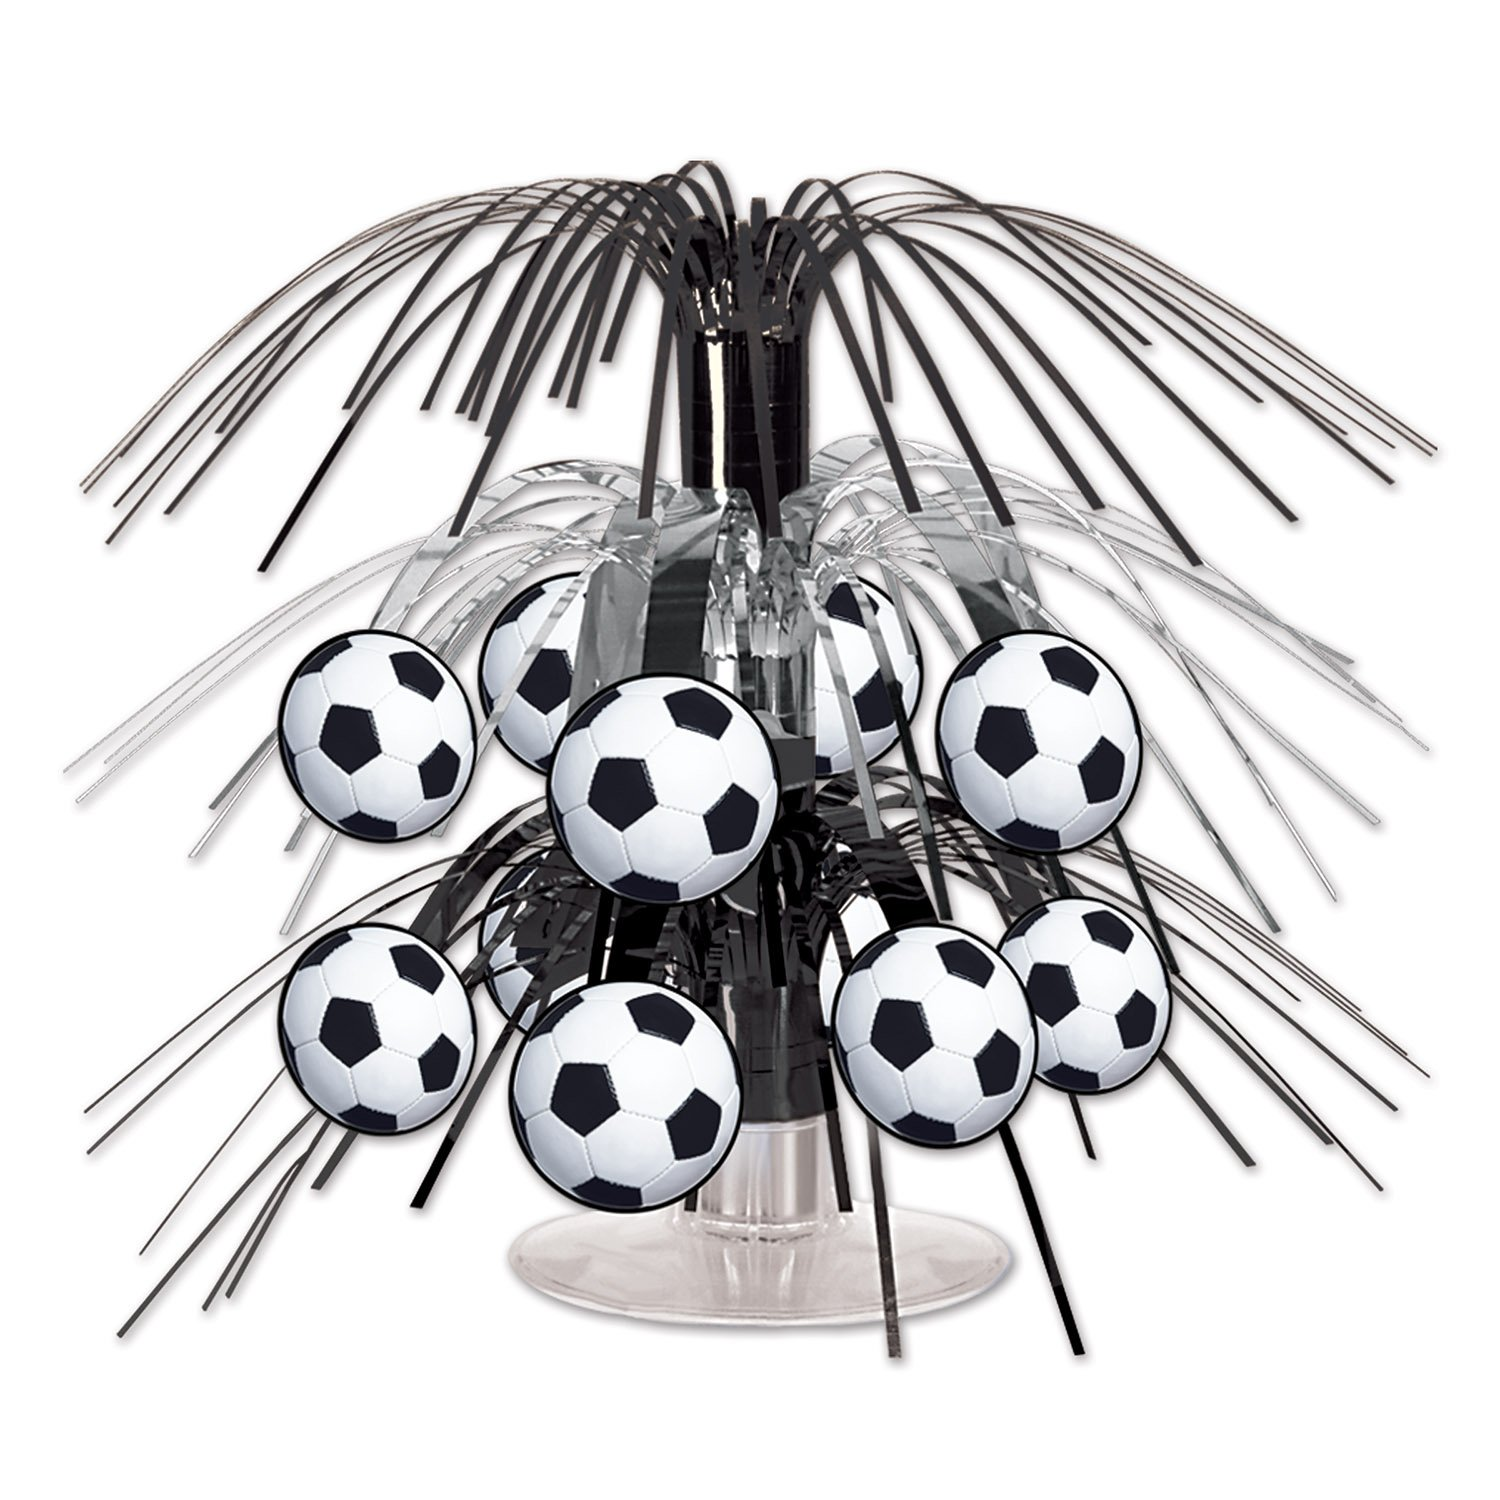 Beistle Soccer Ball Cascade Centerpiece, 71/2-Inch, Black/Silver/White 54098